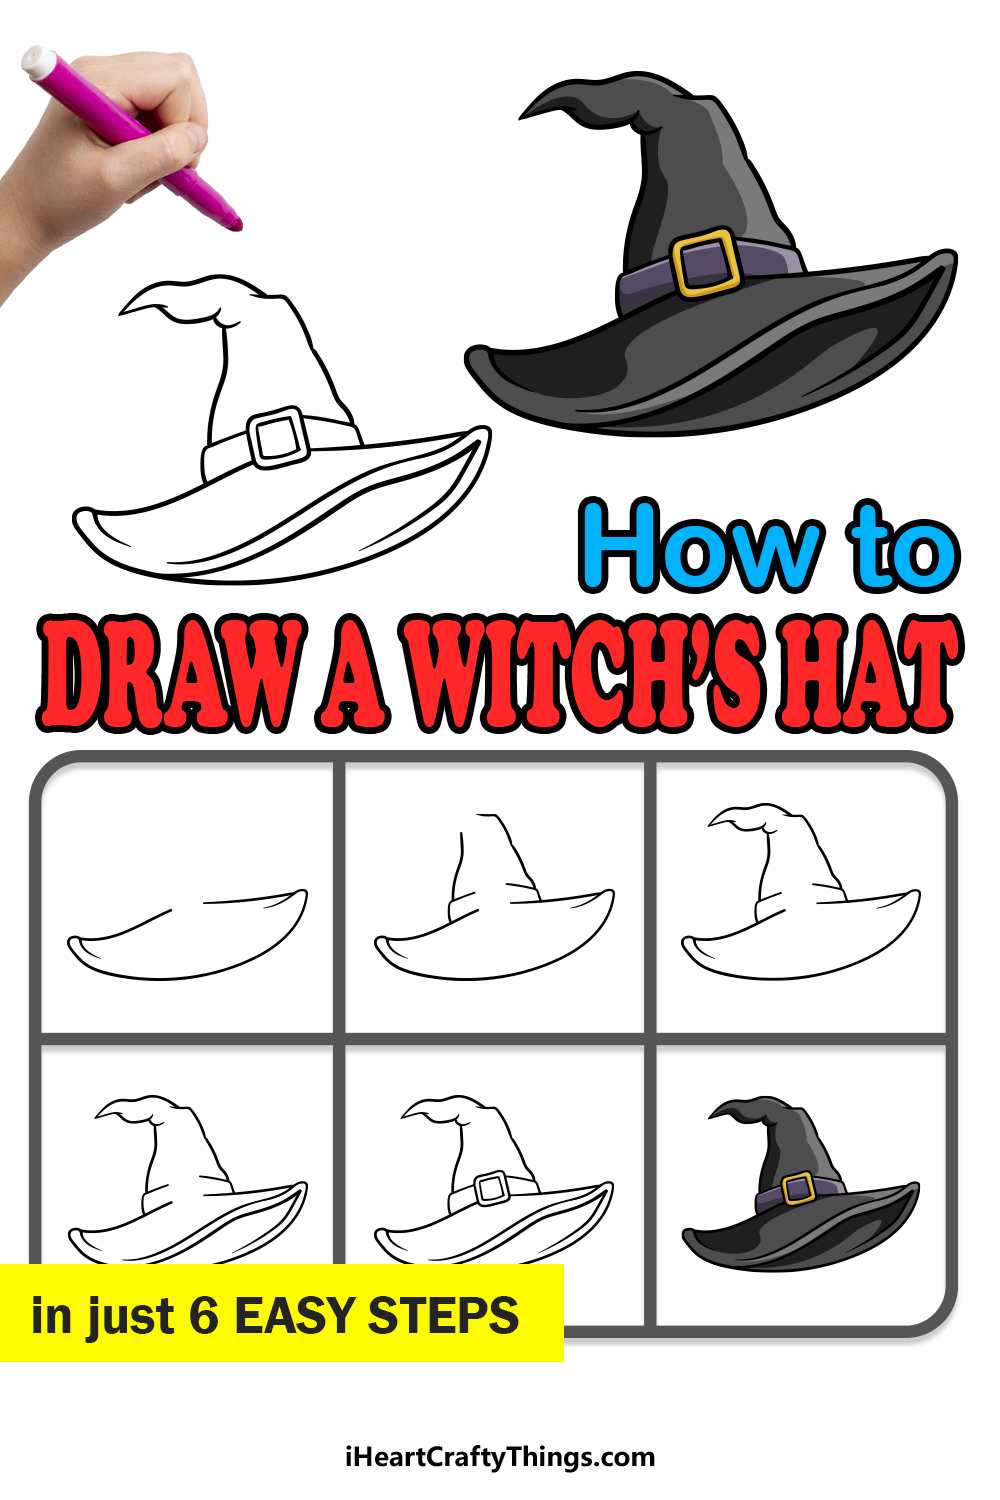 how to draw a witch hat in 6 easy steps